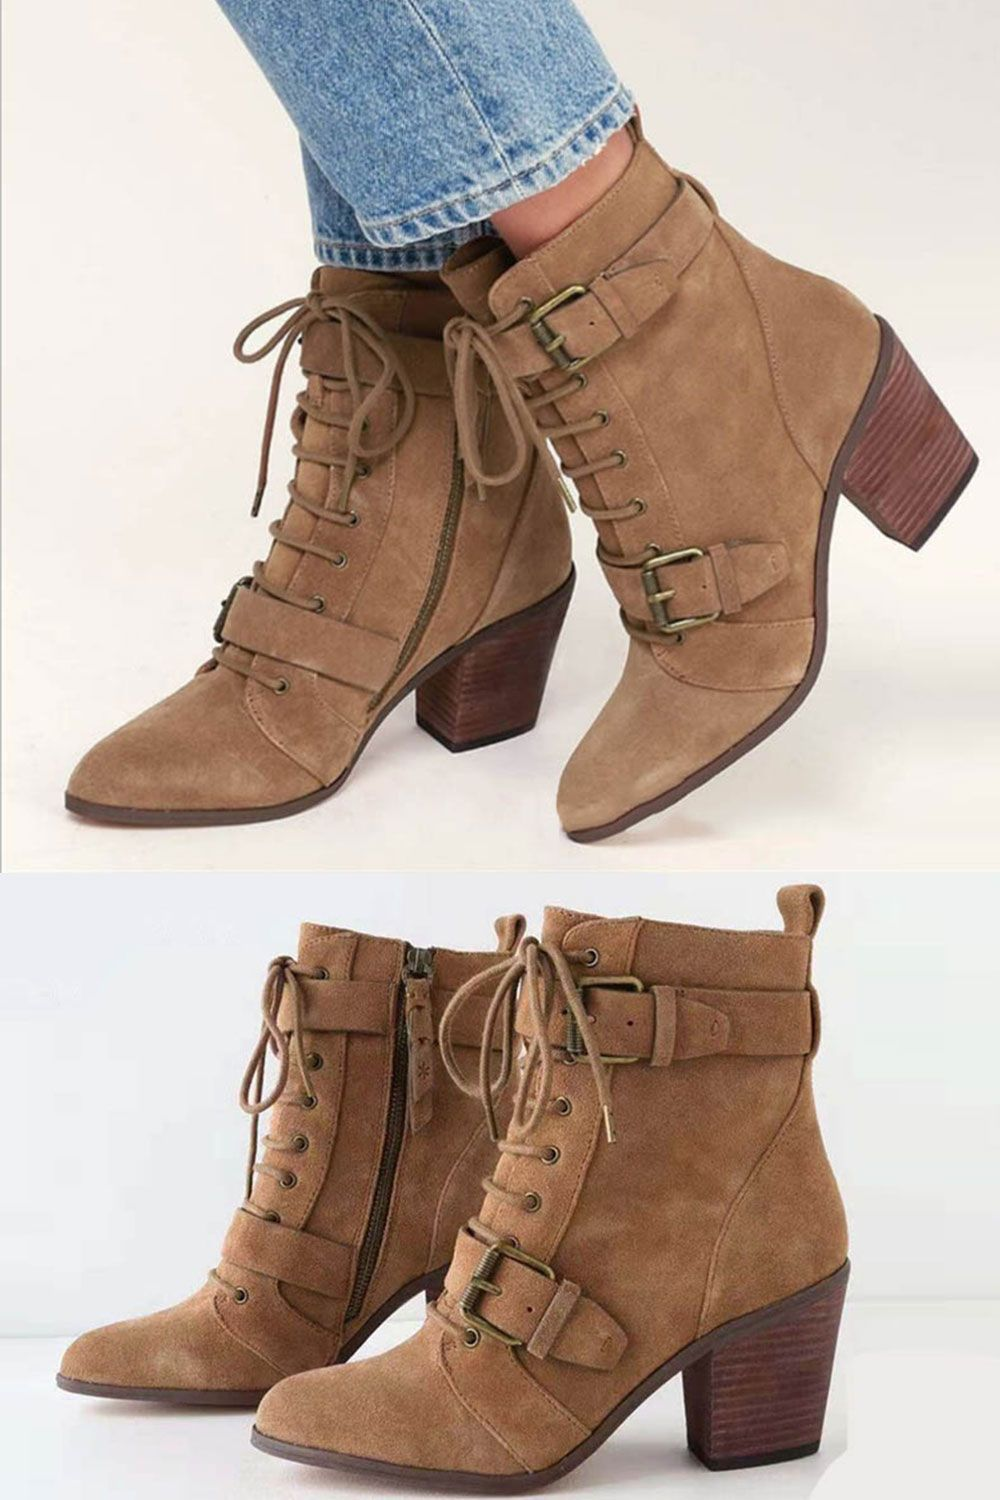 61f6b22985e Stylish Round Toe Side Zipper Buckle Ankle Boots in 2019